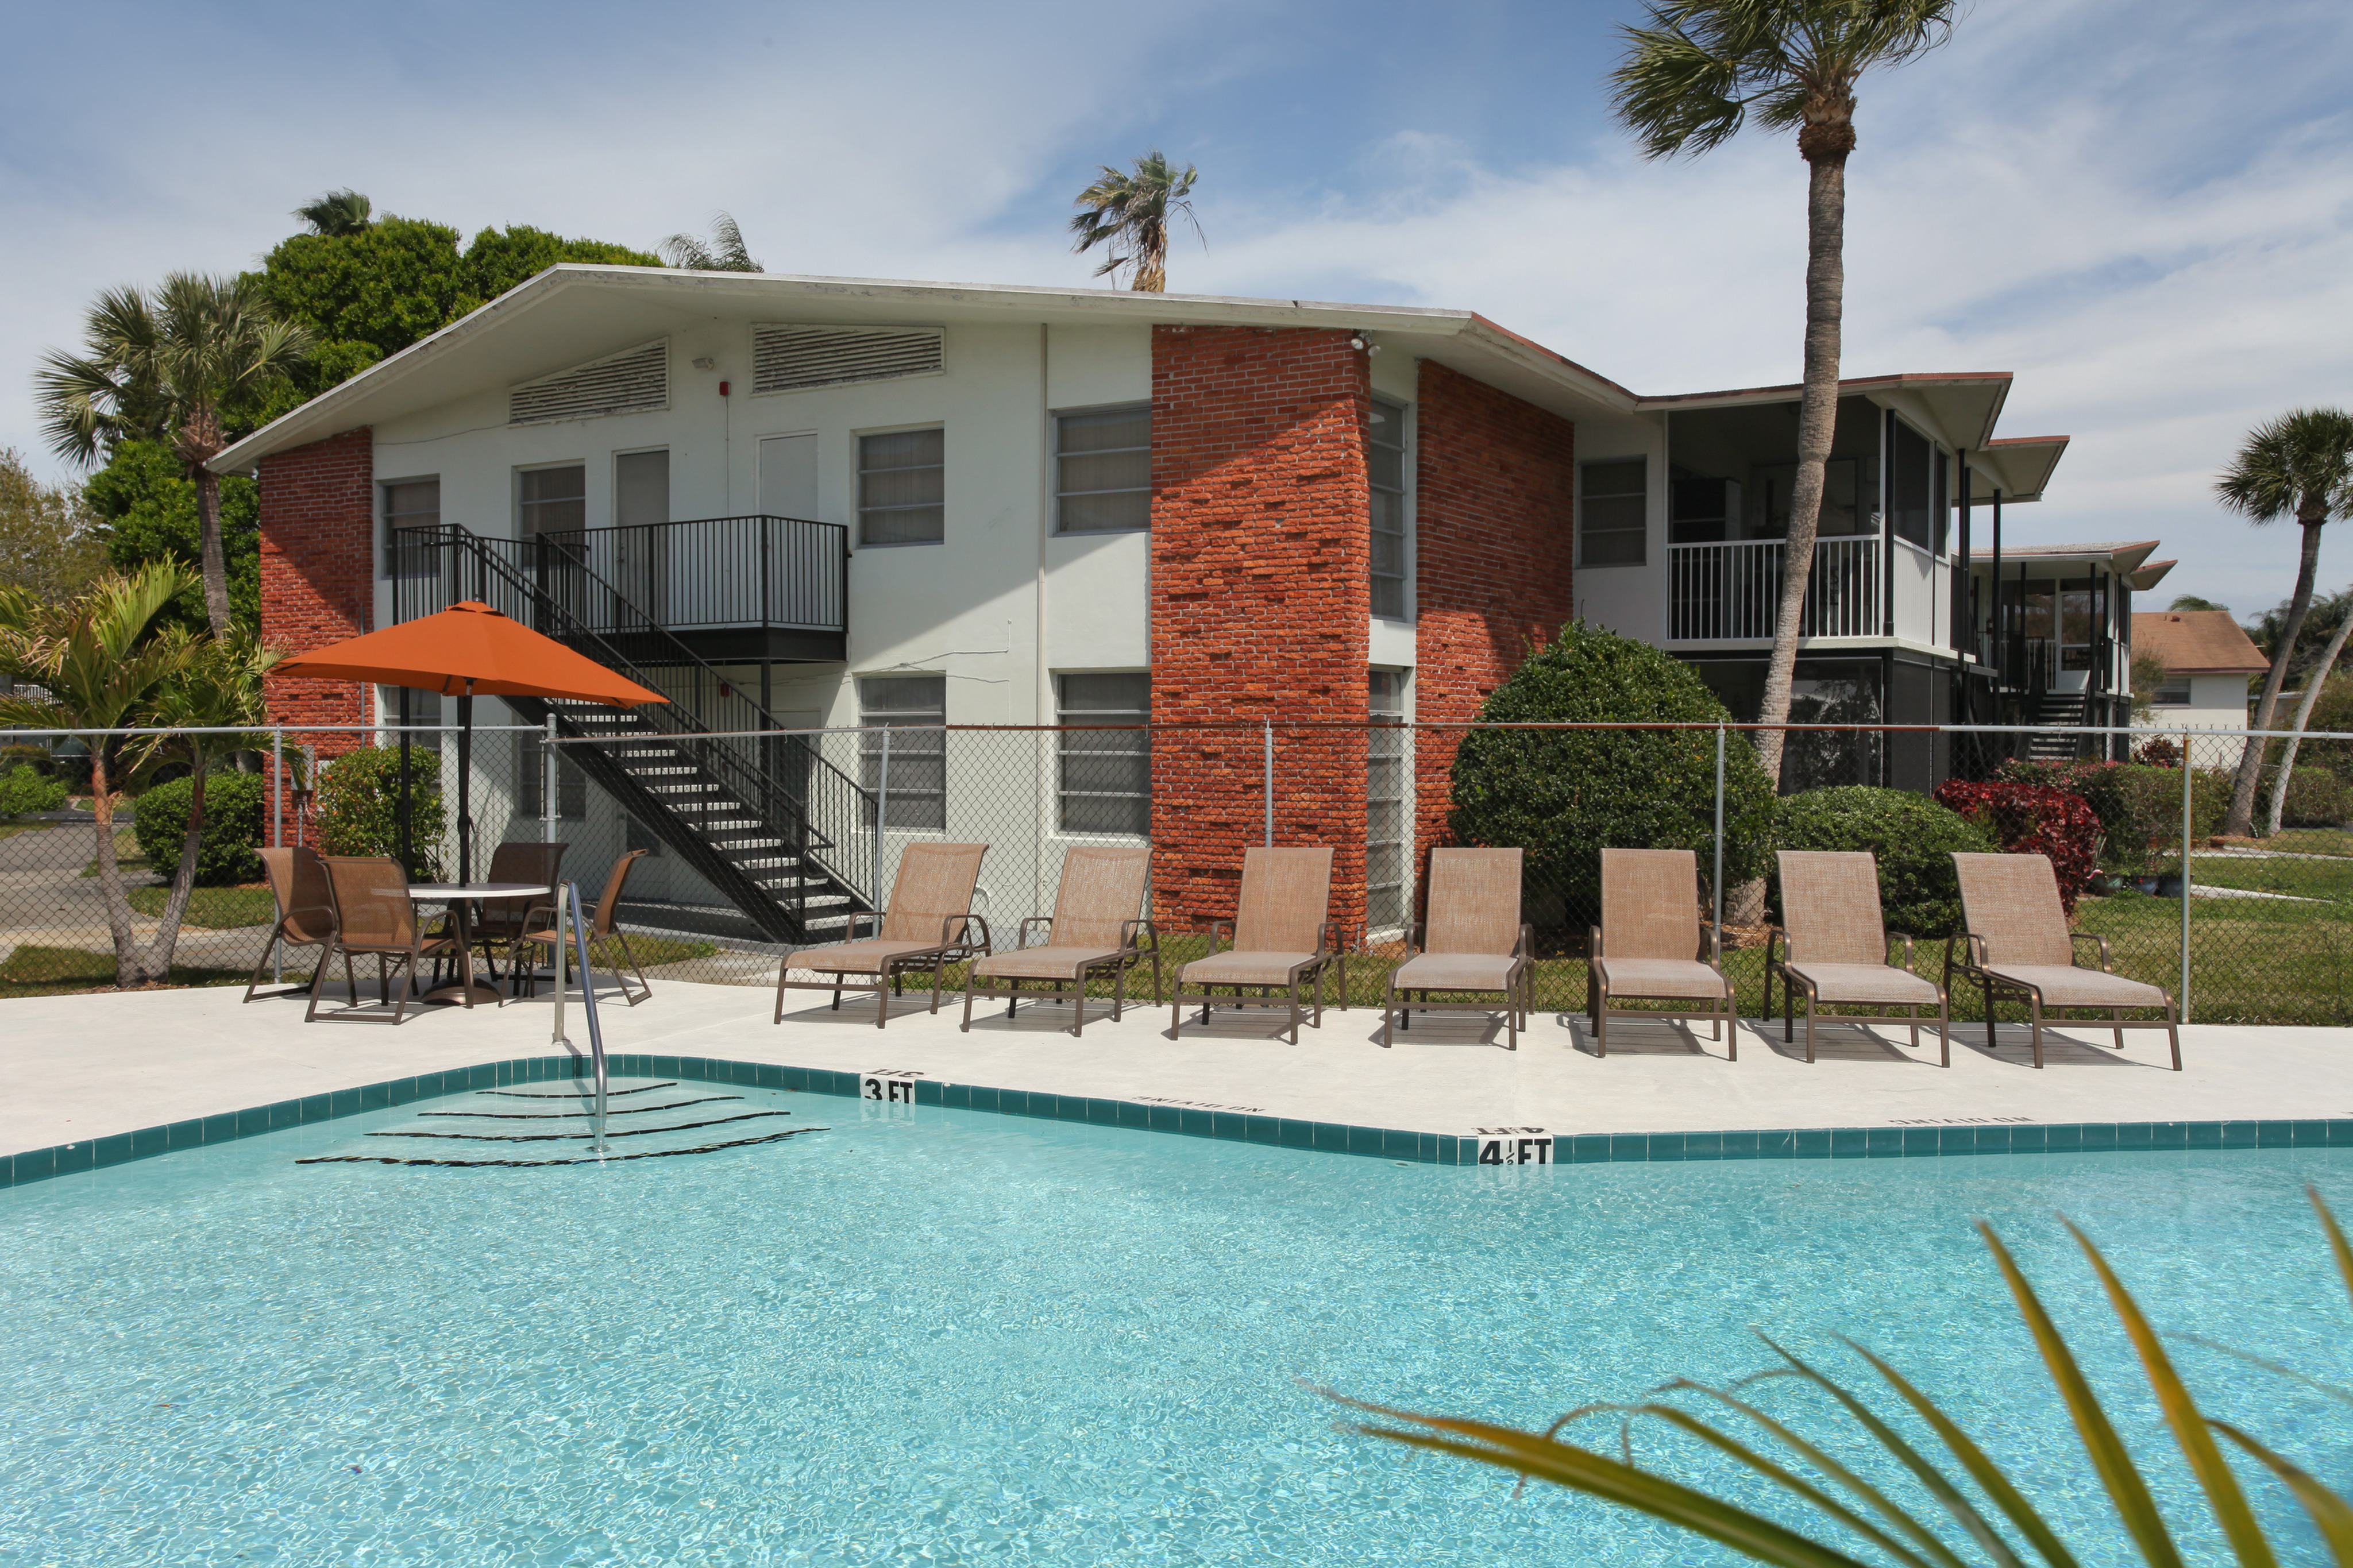 Photo of community swimming pool area with outdoor seating and umbrellas, with apartment building in background.